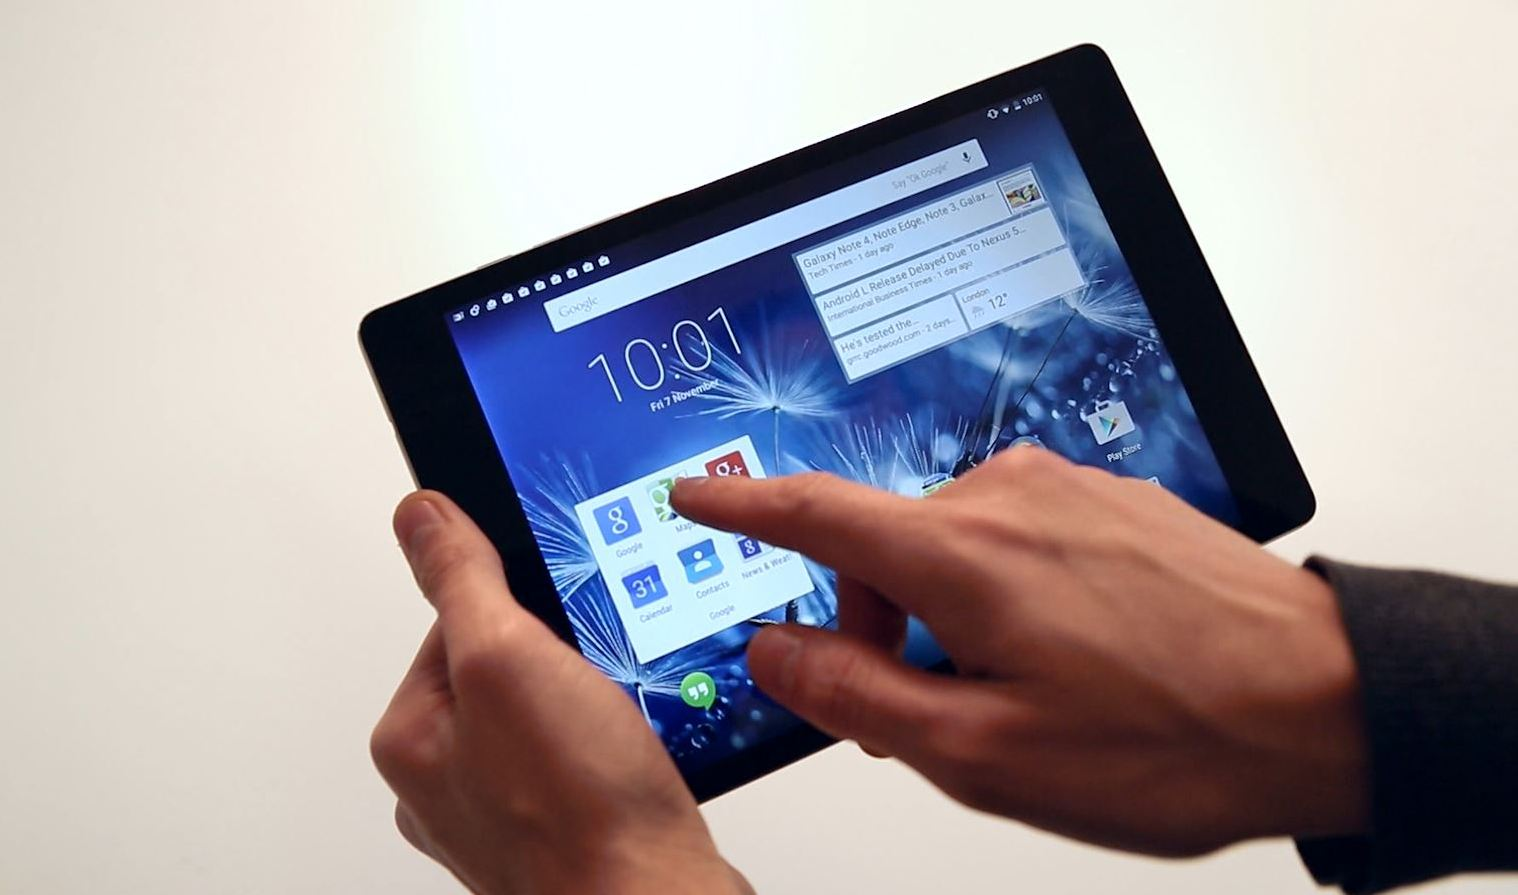 Now, Buy Google Nexus 9 at $100 Discount on BestBuy, by Trading-in your Old Tablet